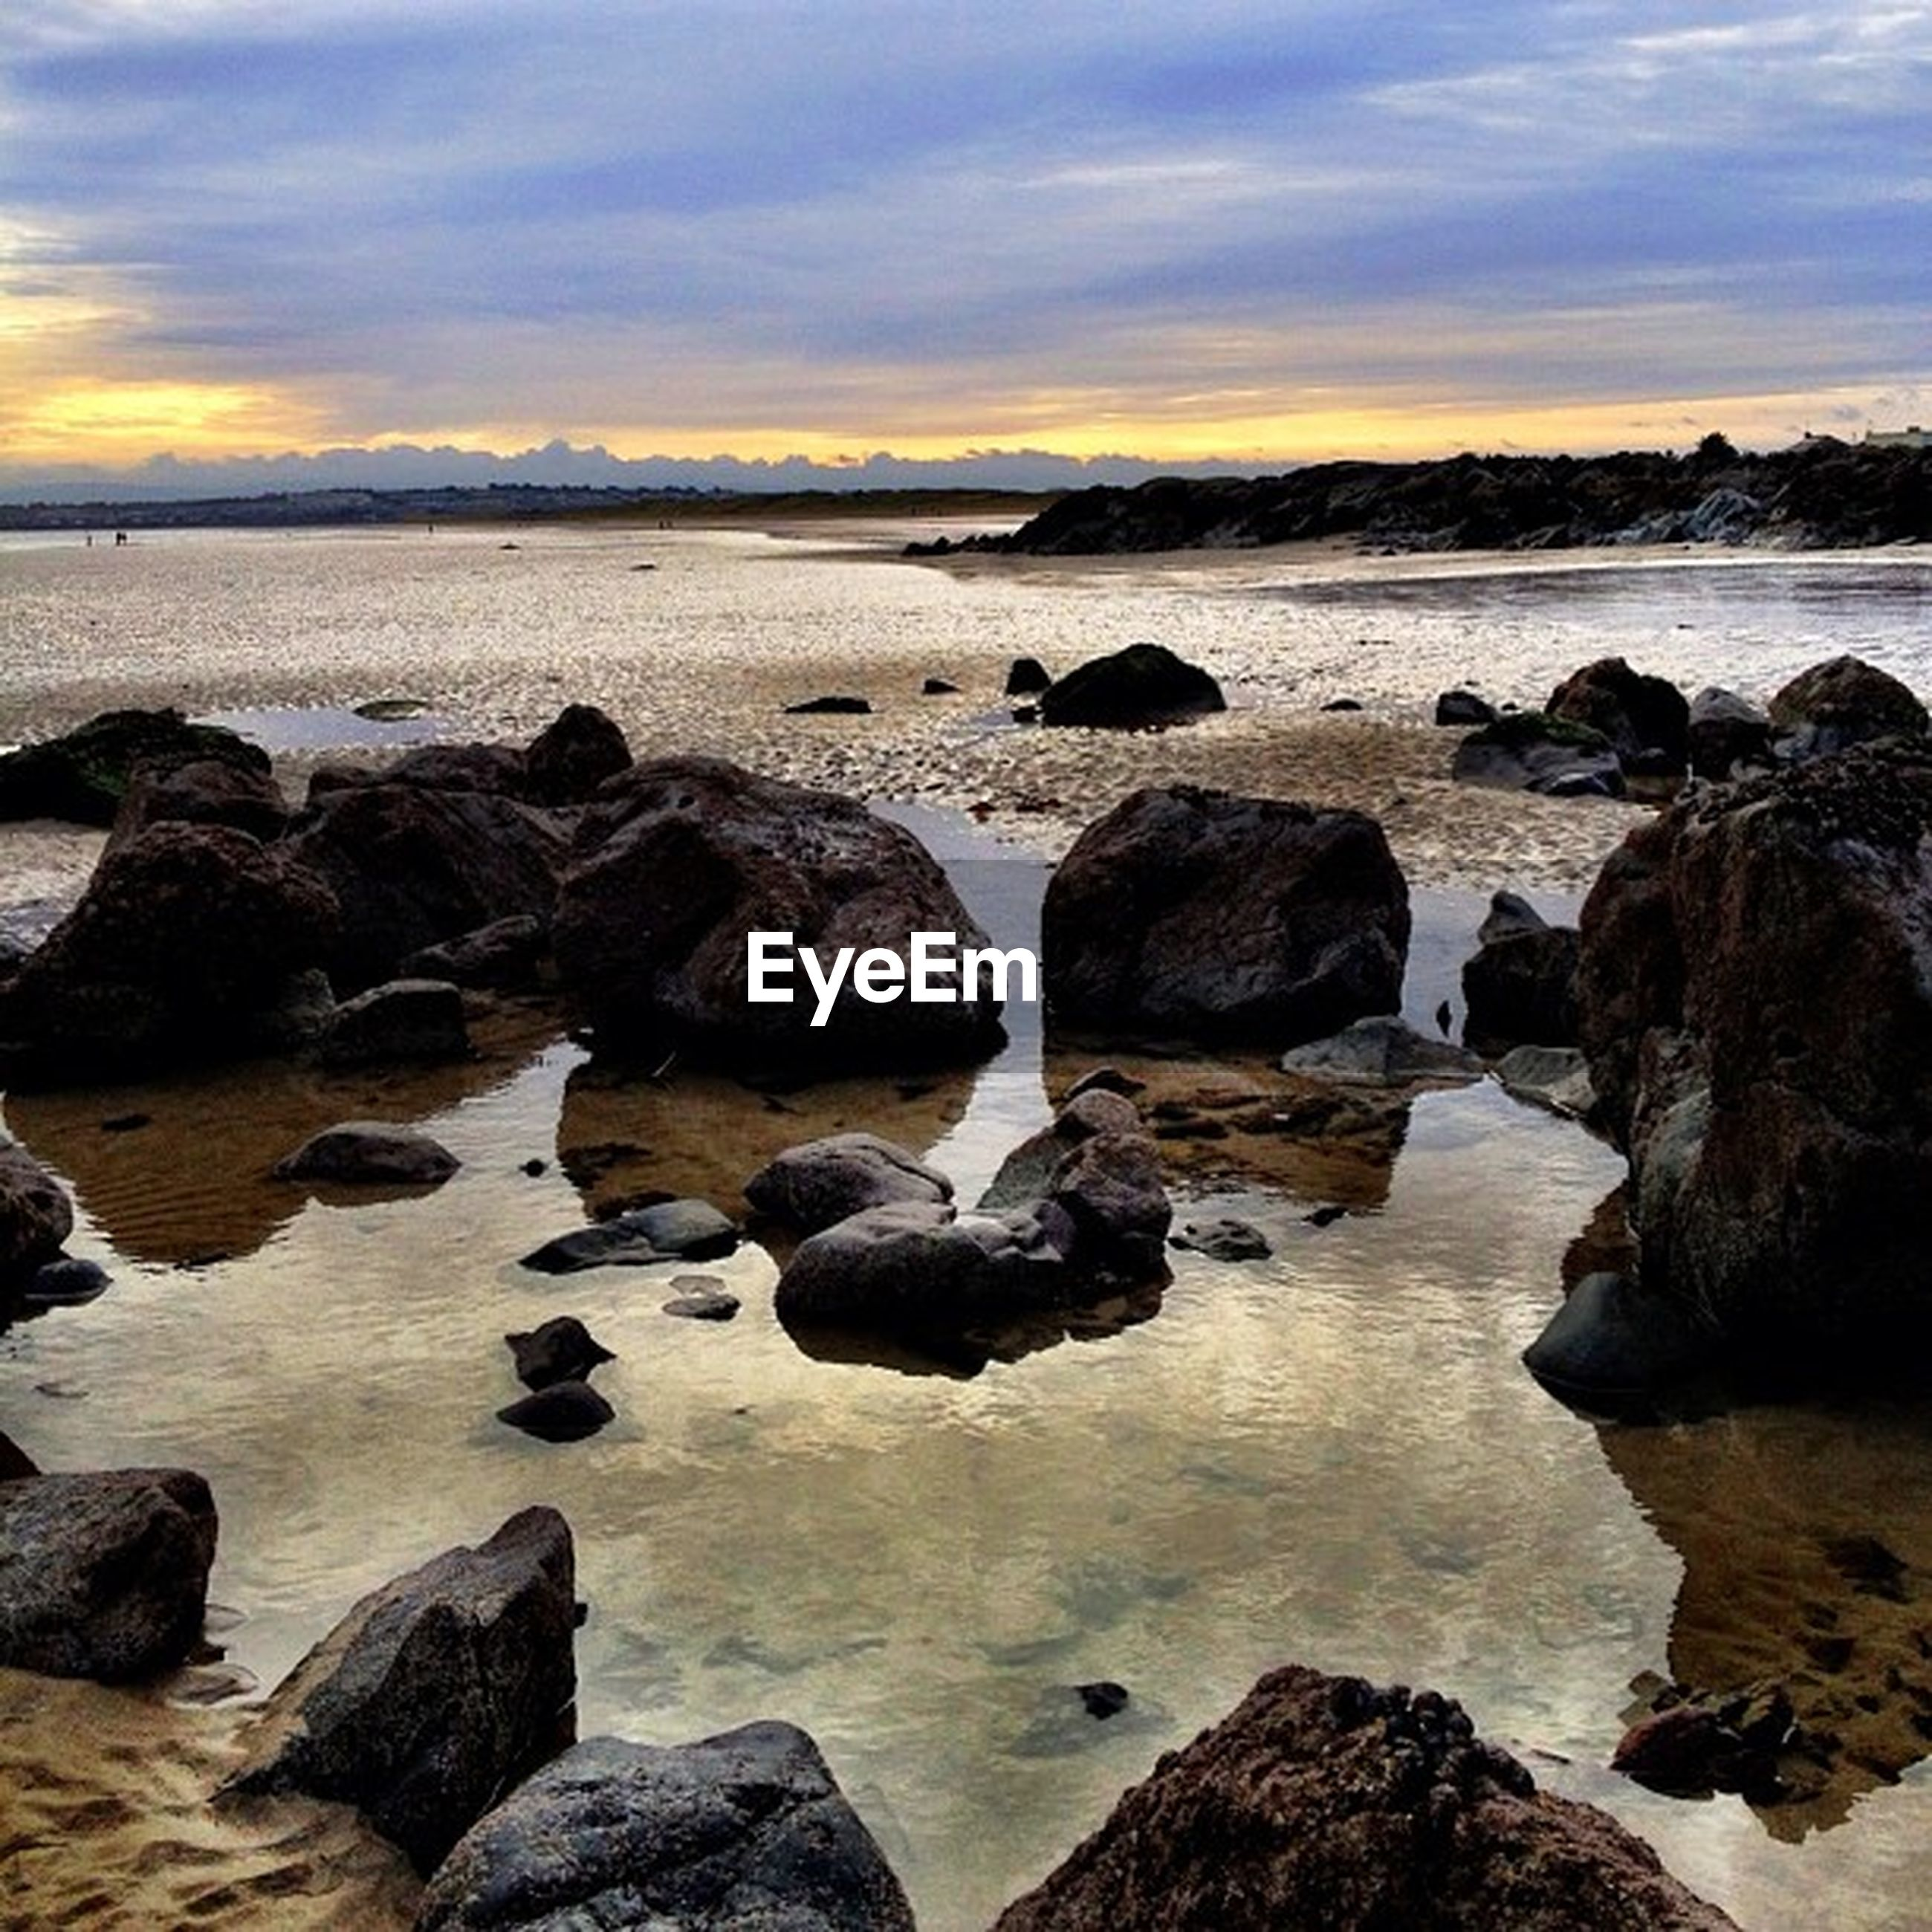 water, sea, rock - object, sky, scenics, beach, shore, beauty in nature, tranquil scene, sunset, tranquility, cloud - sky, horizon over water, nature, rock formation, rock, wave, idyllic, stone - object, cloud